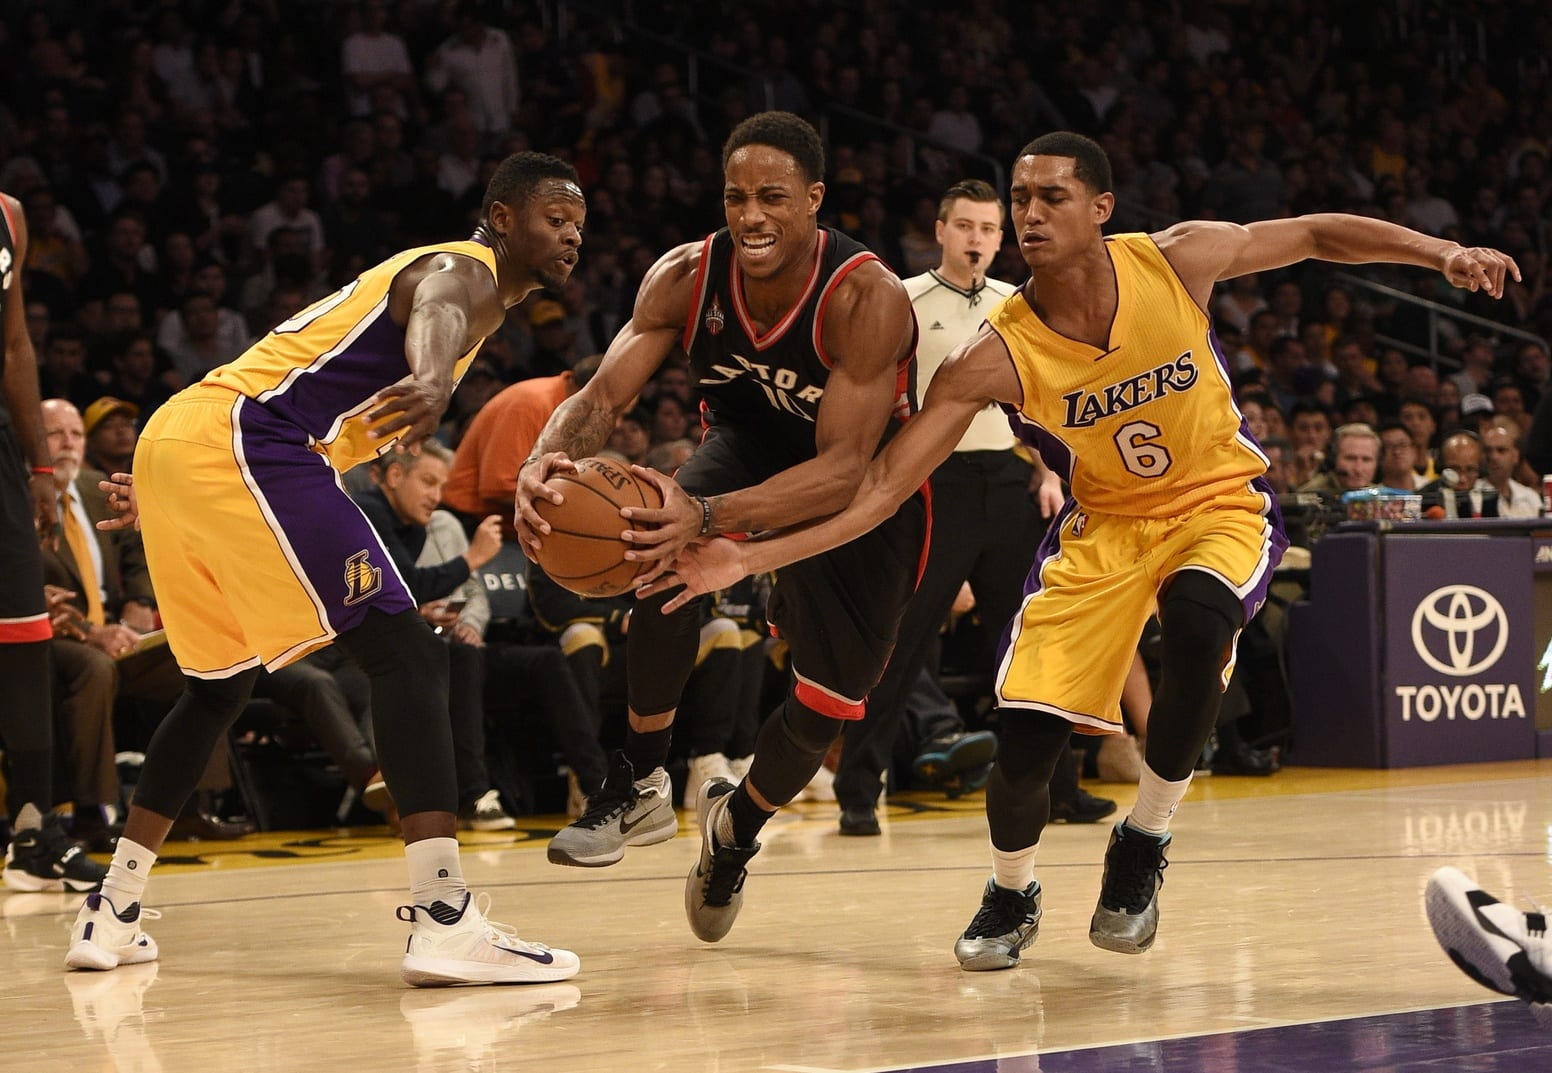 Raptors Vs Lakers Pinterest: Los Angeles Lakers Vs. Toronto Raptors NBA Highlights